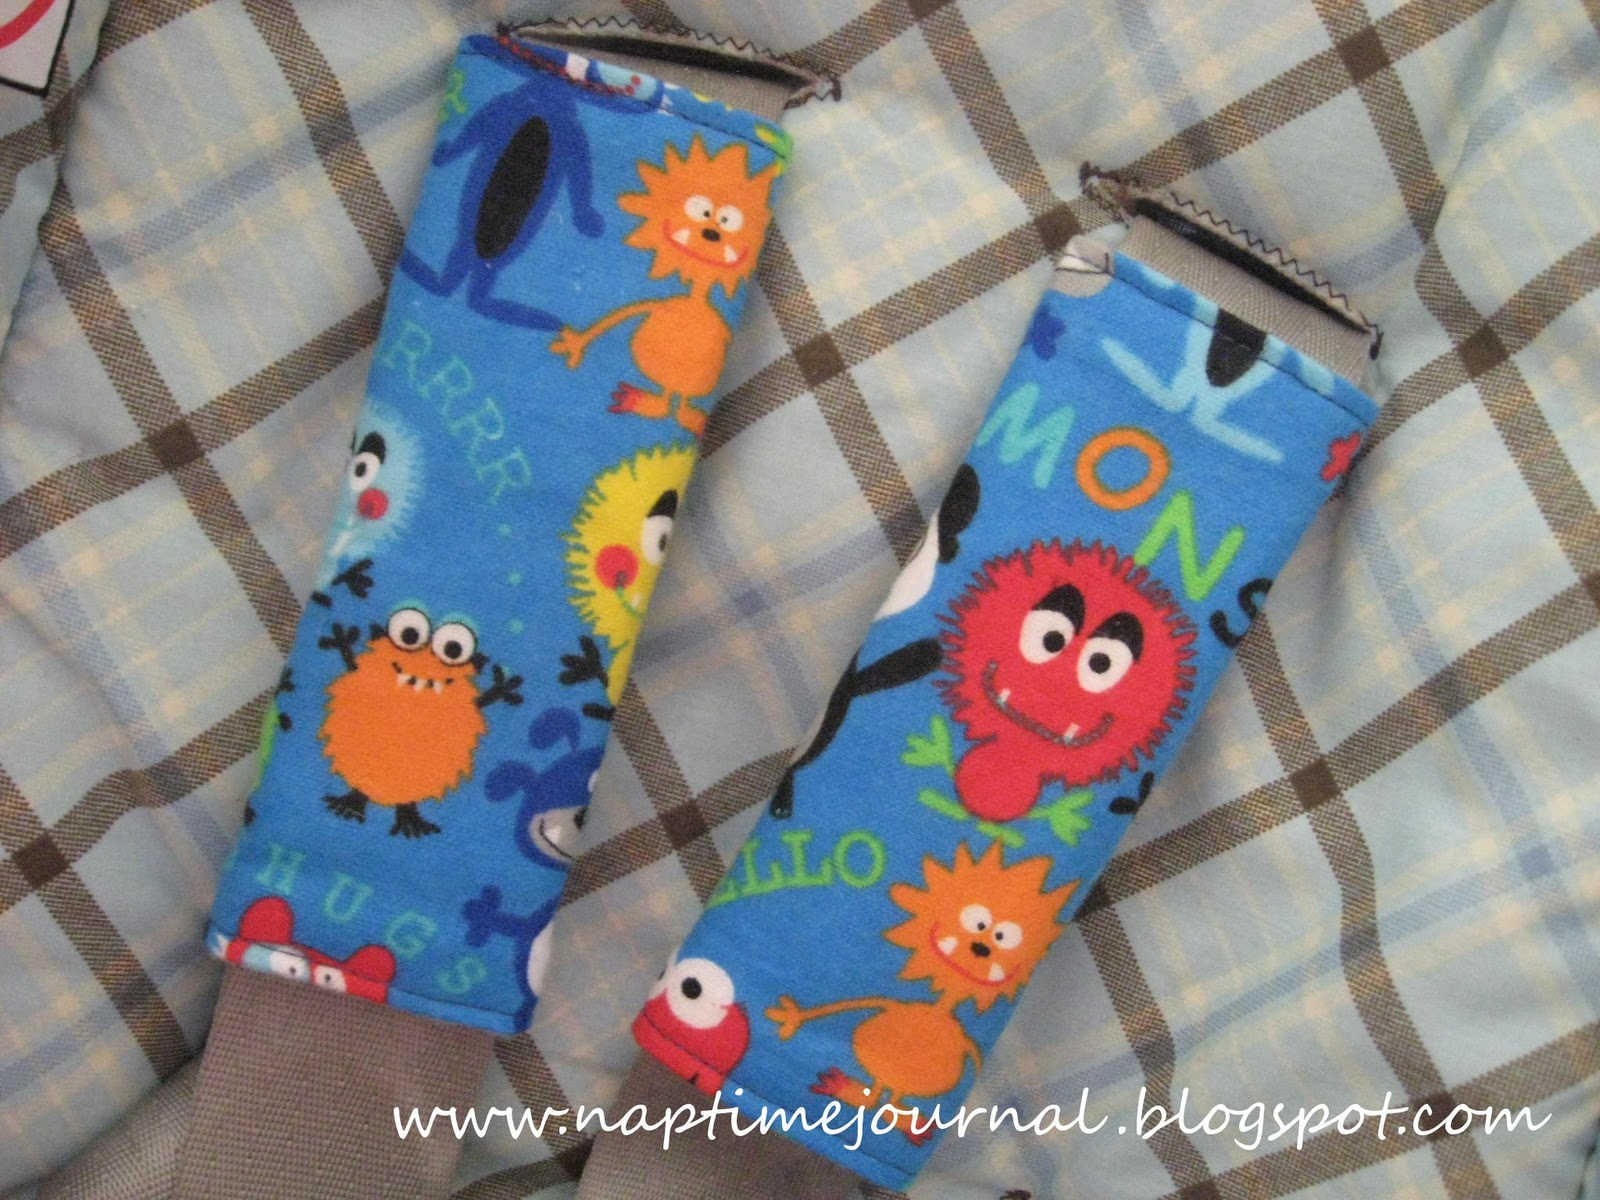 Nap time journal baby boy monster seat belt covers for Monster themed fabric